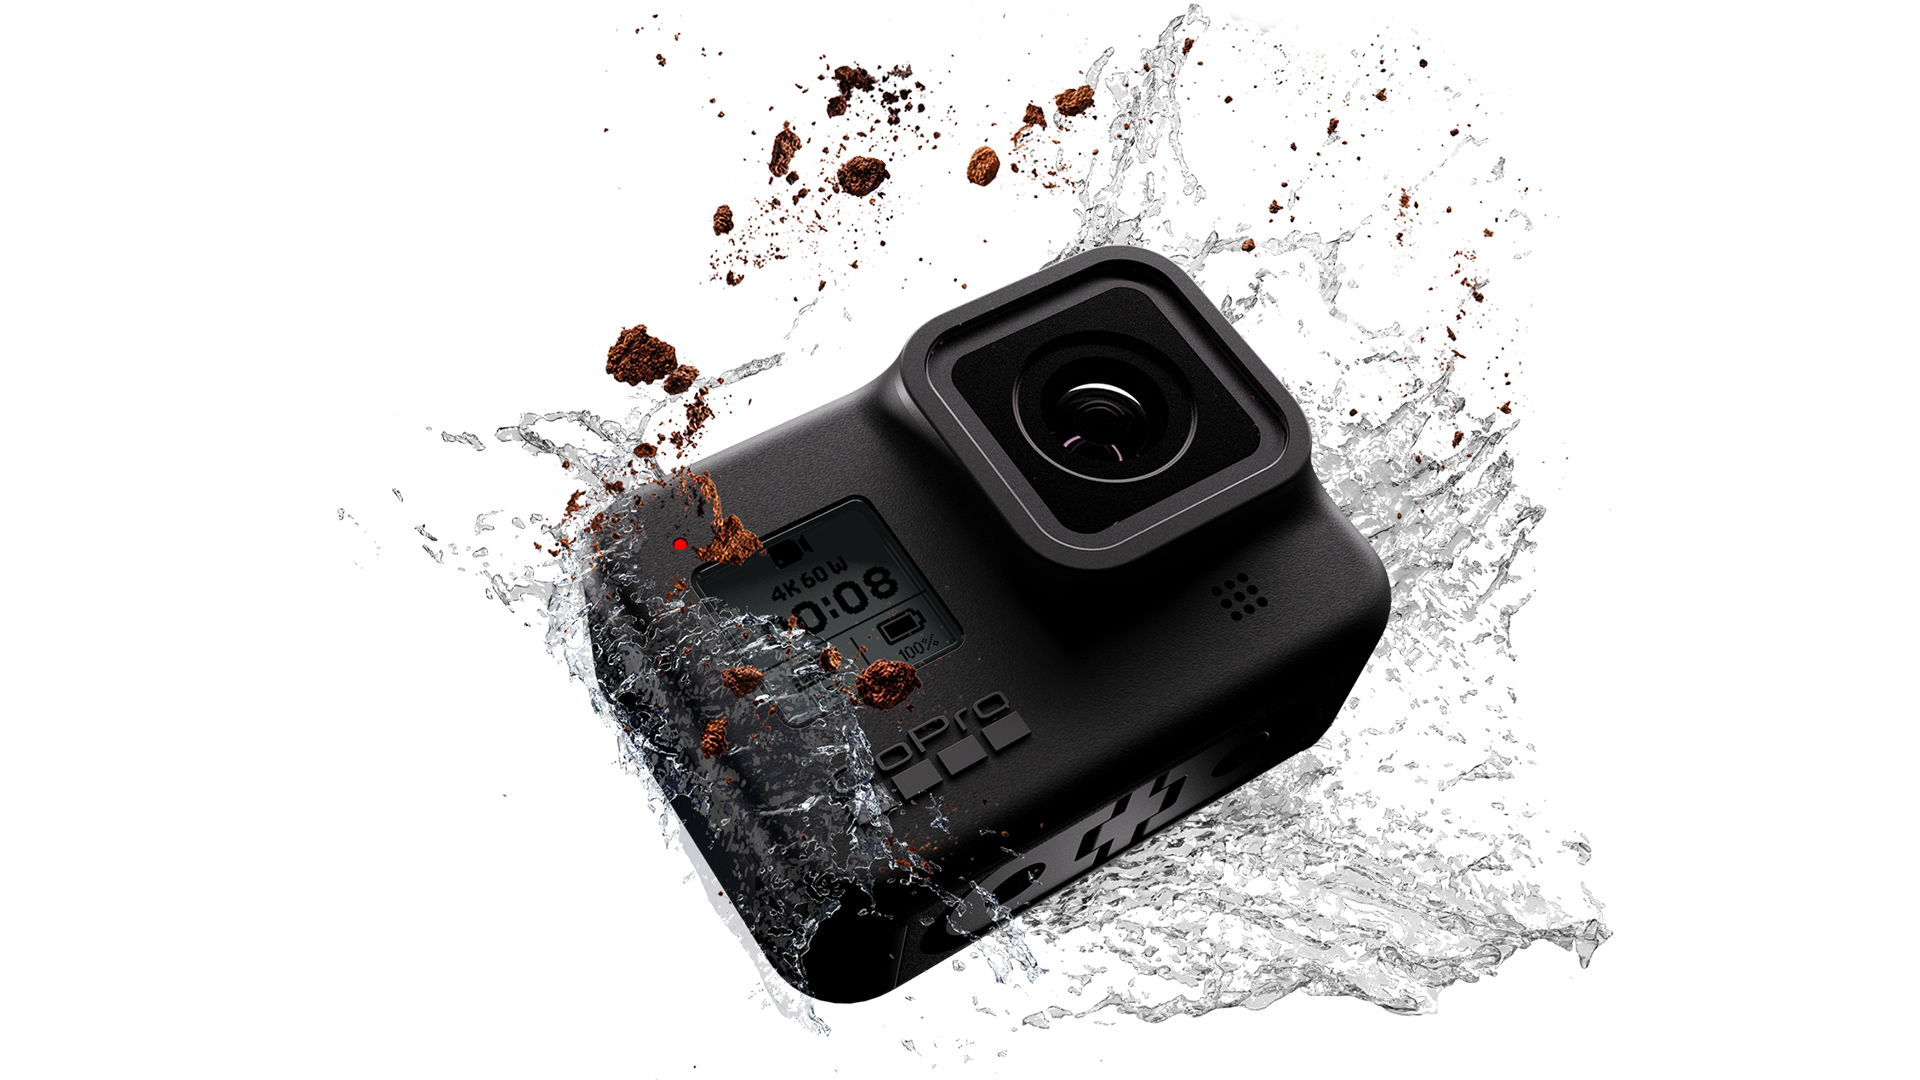 GoPro Labs has launched